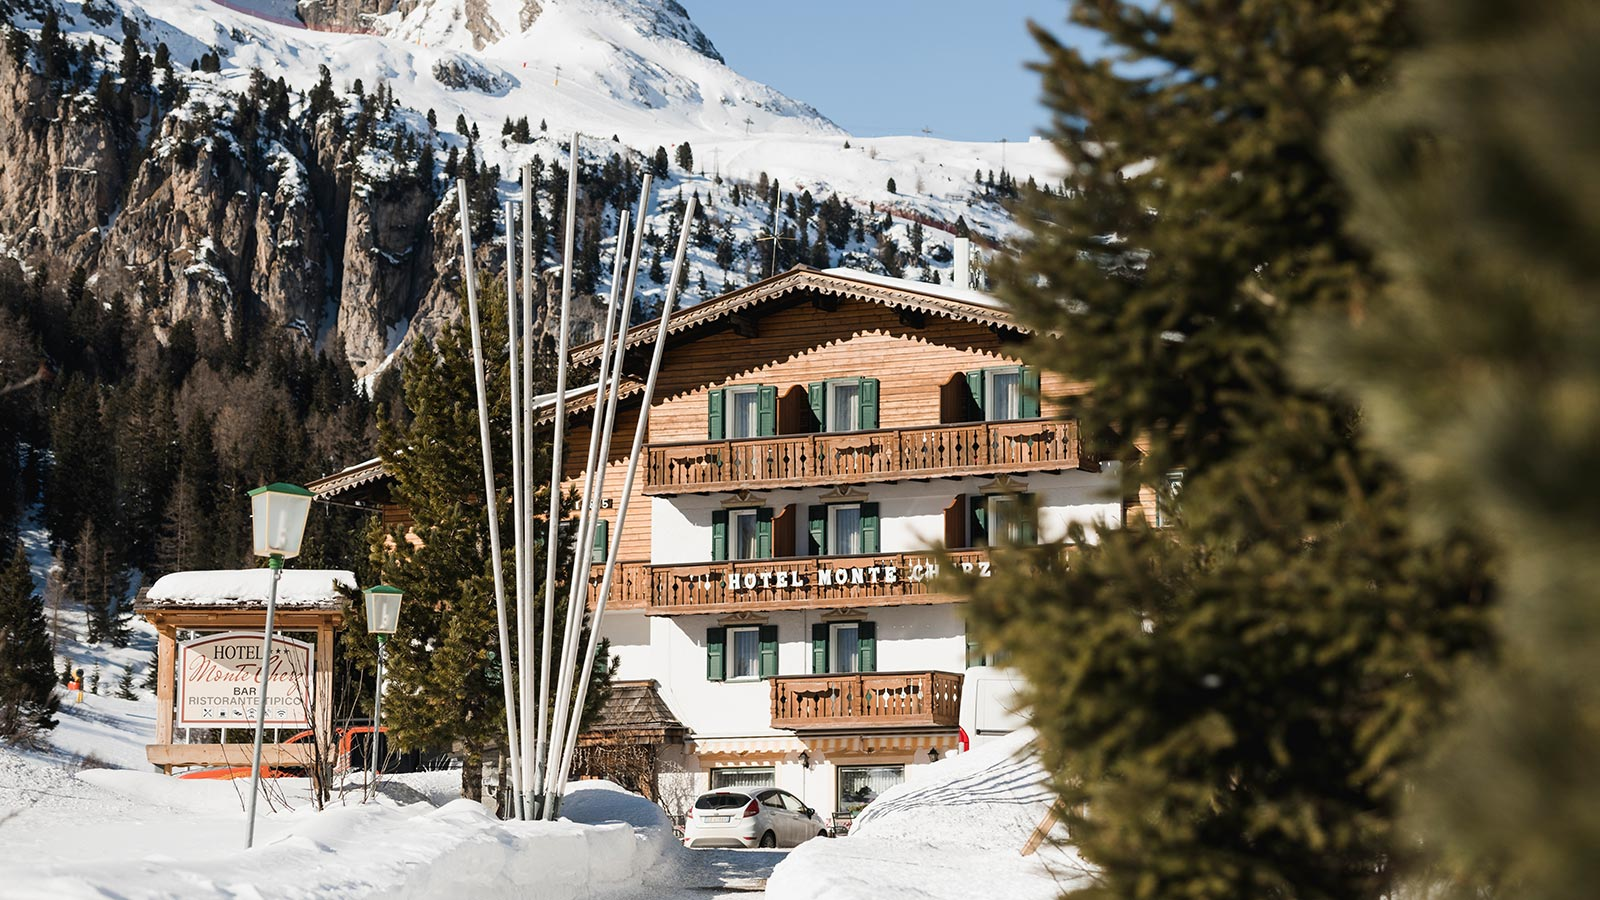 The facade of Hotel Monte Cherz during the winter season